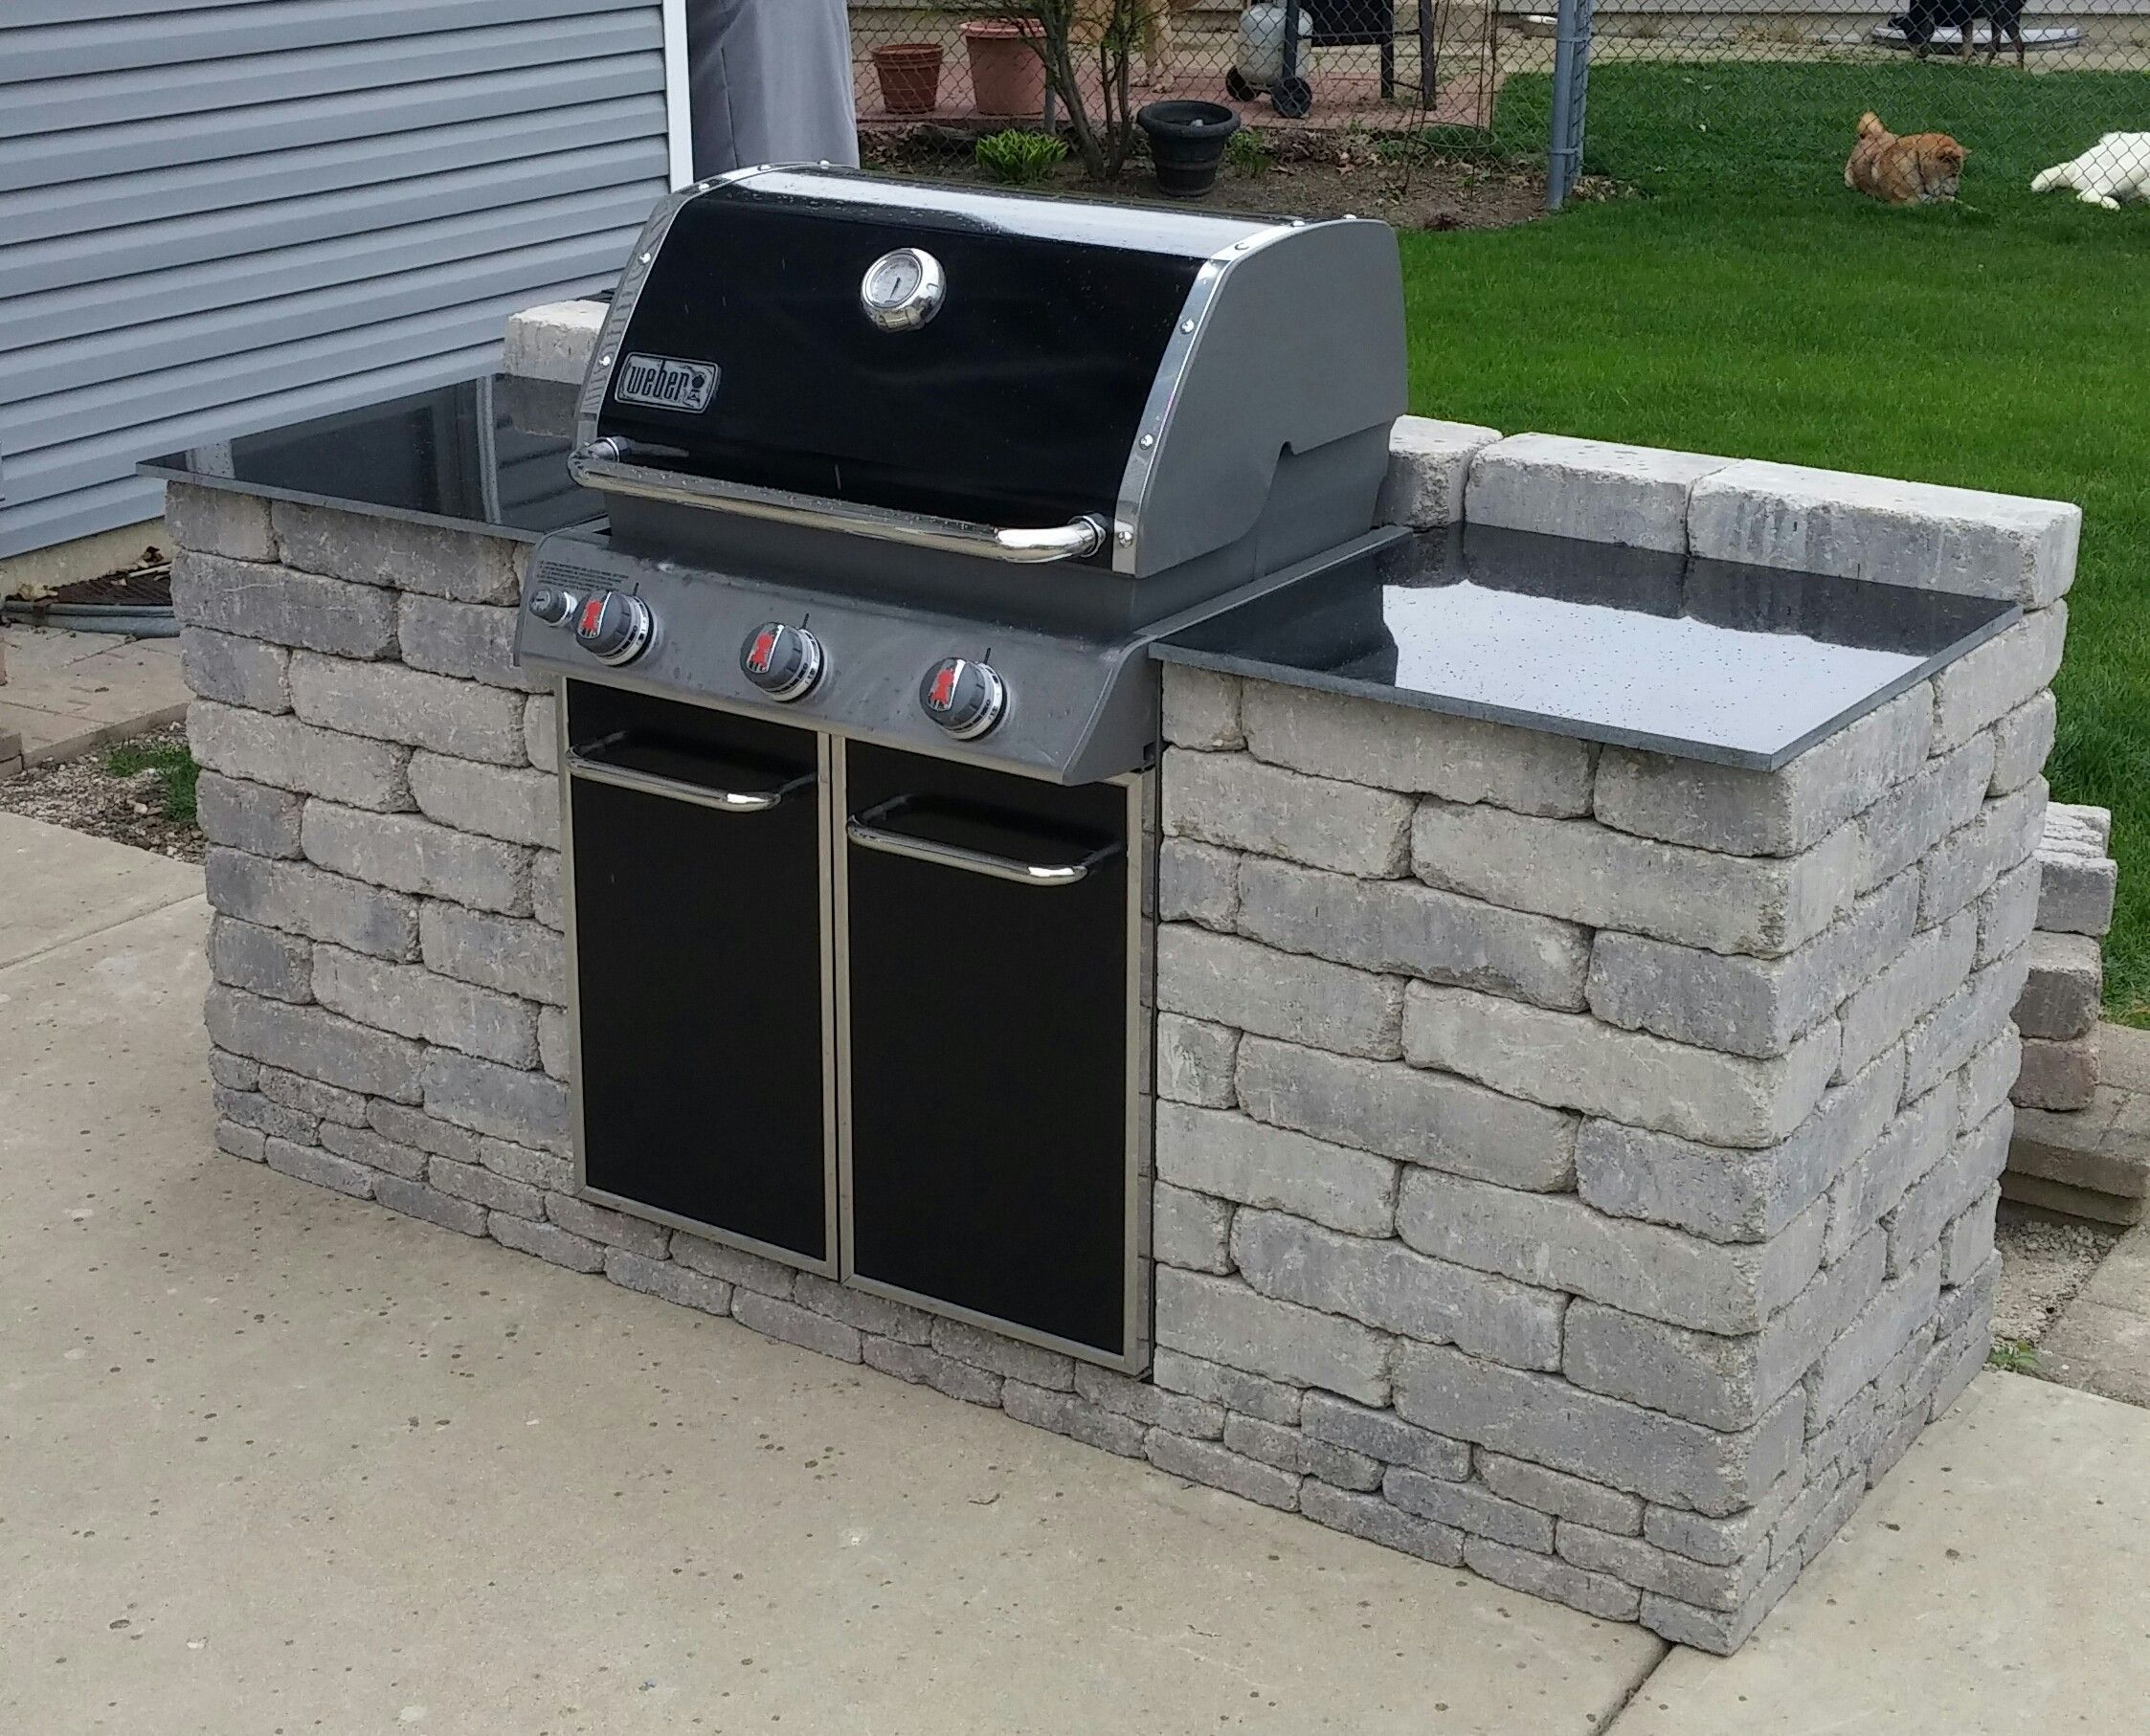 Barbeque Grill Enclosure Outdoor Grill Area Outdoor Barbeque Build Outdoor Kitchen